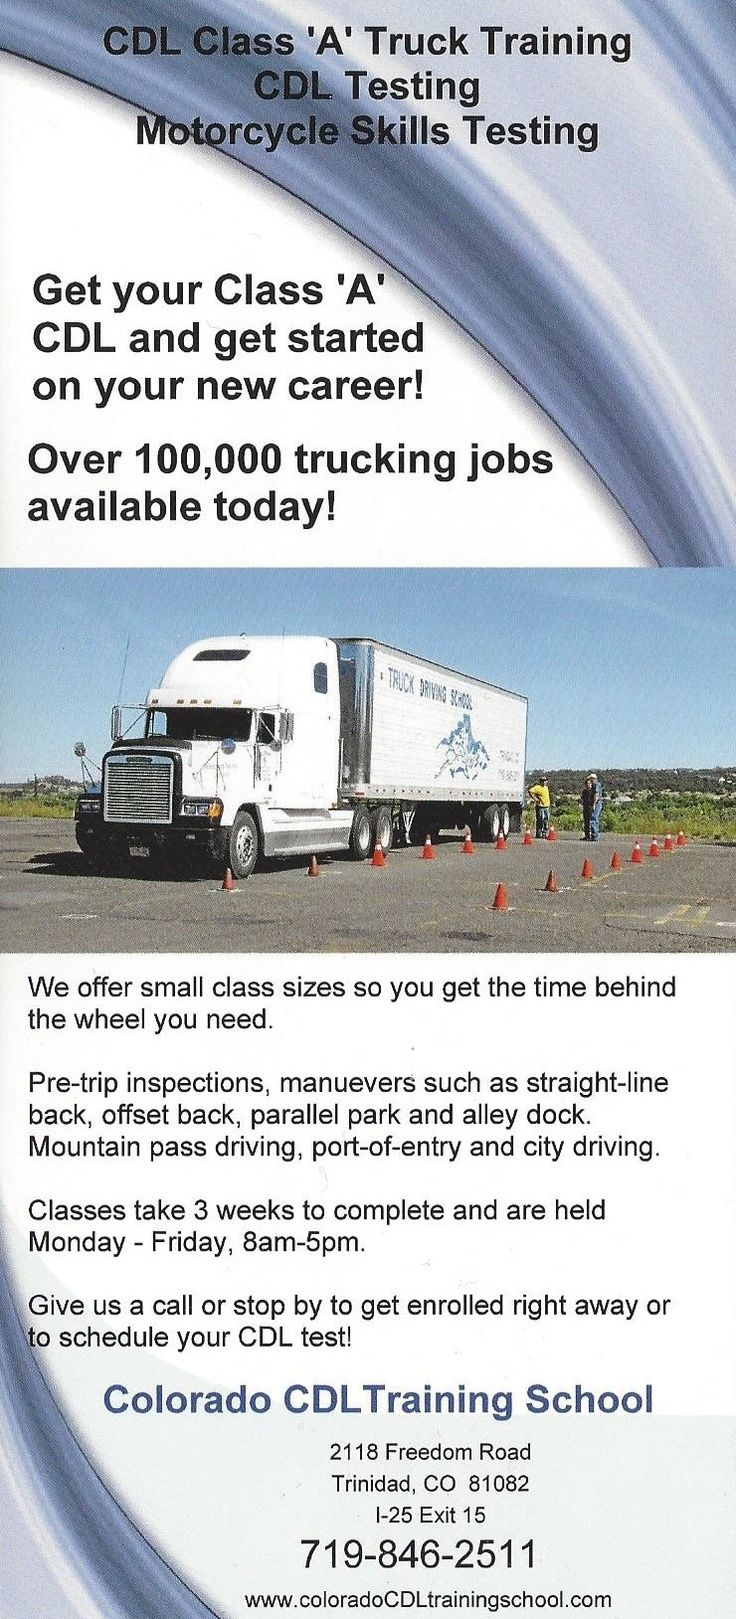 The Colorado CDL Training School in Trinidad, CO offers quality Truck Driving Training in the foothills of the Rockies. Click on the pin for more information on our Truck Driving School! #Trucks #Jobs #Employment #Colorado #CDL #Training #School #Money #Students